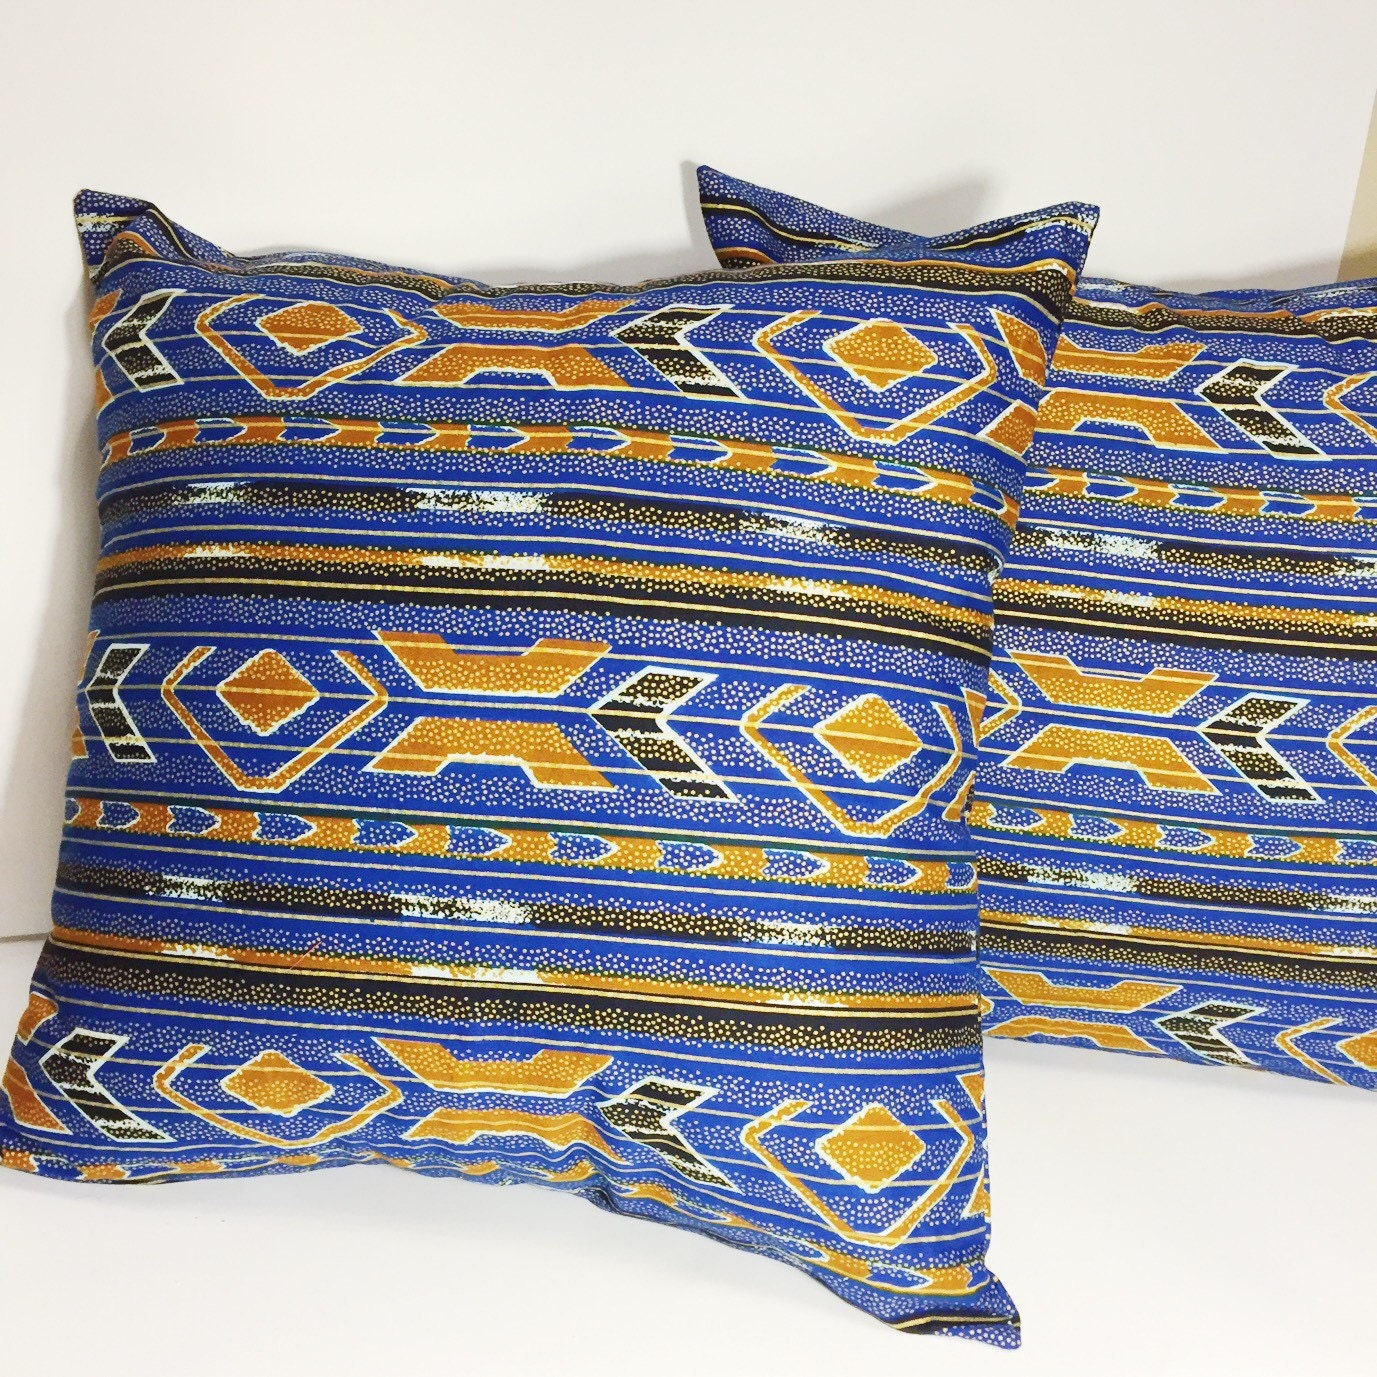 Blue and Gold Throw Pillow Cover // Black and Blue Decorative Pillow // African Print Accent ...